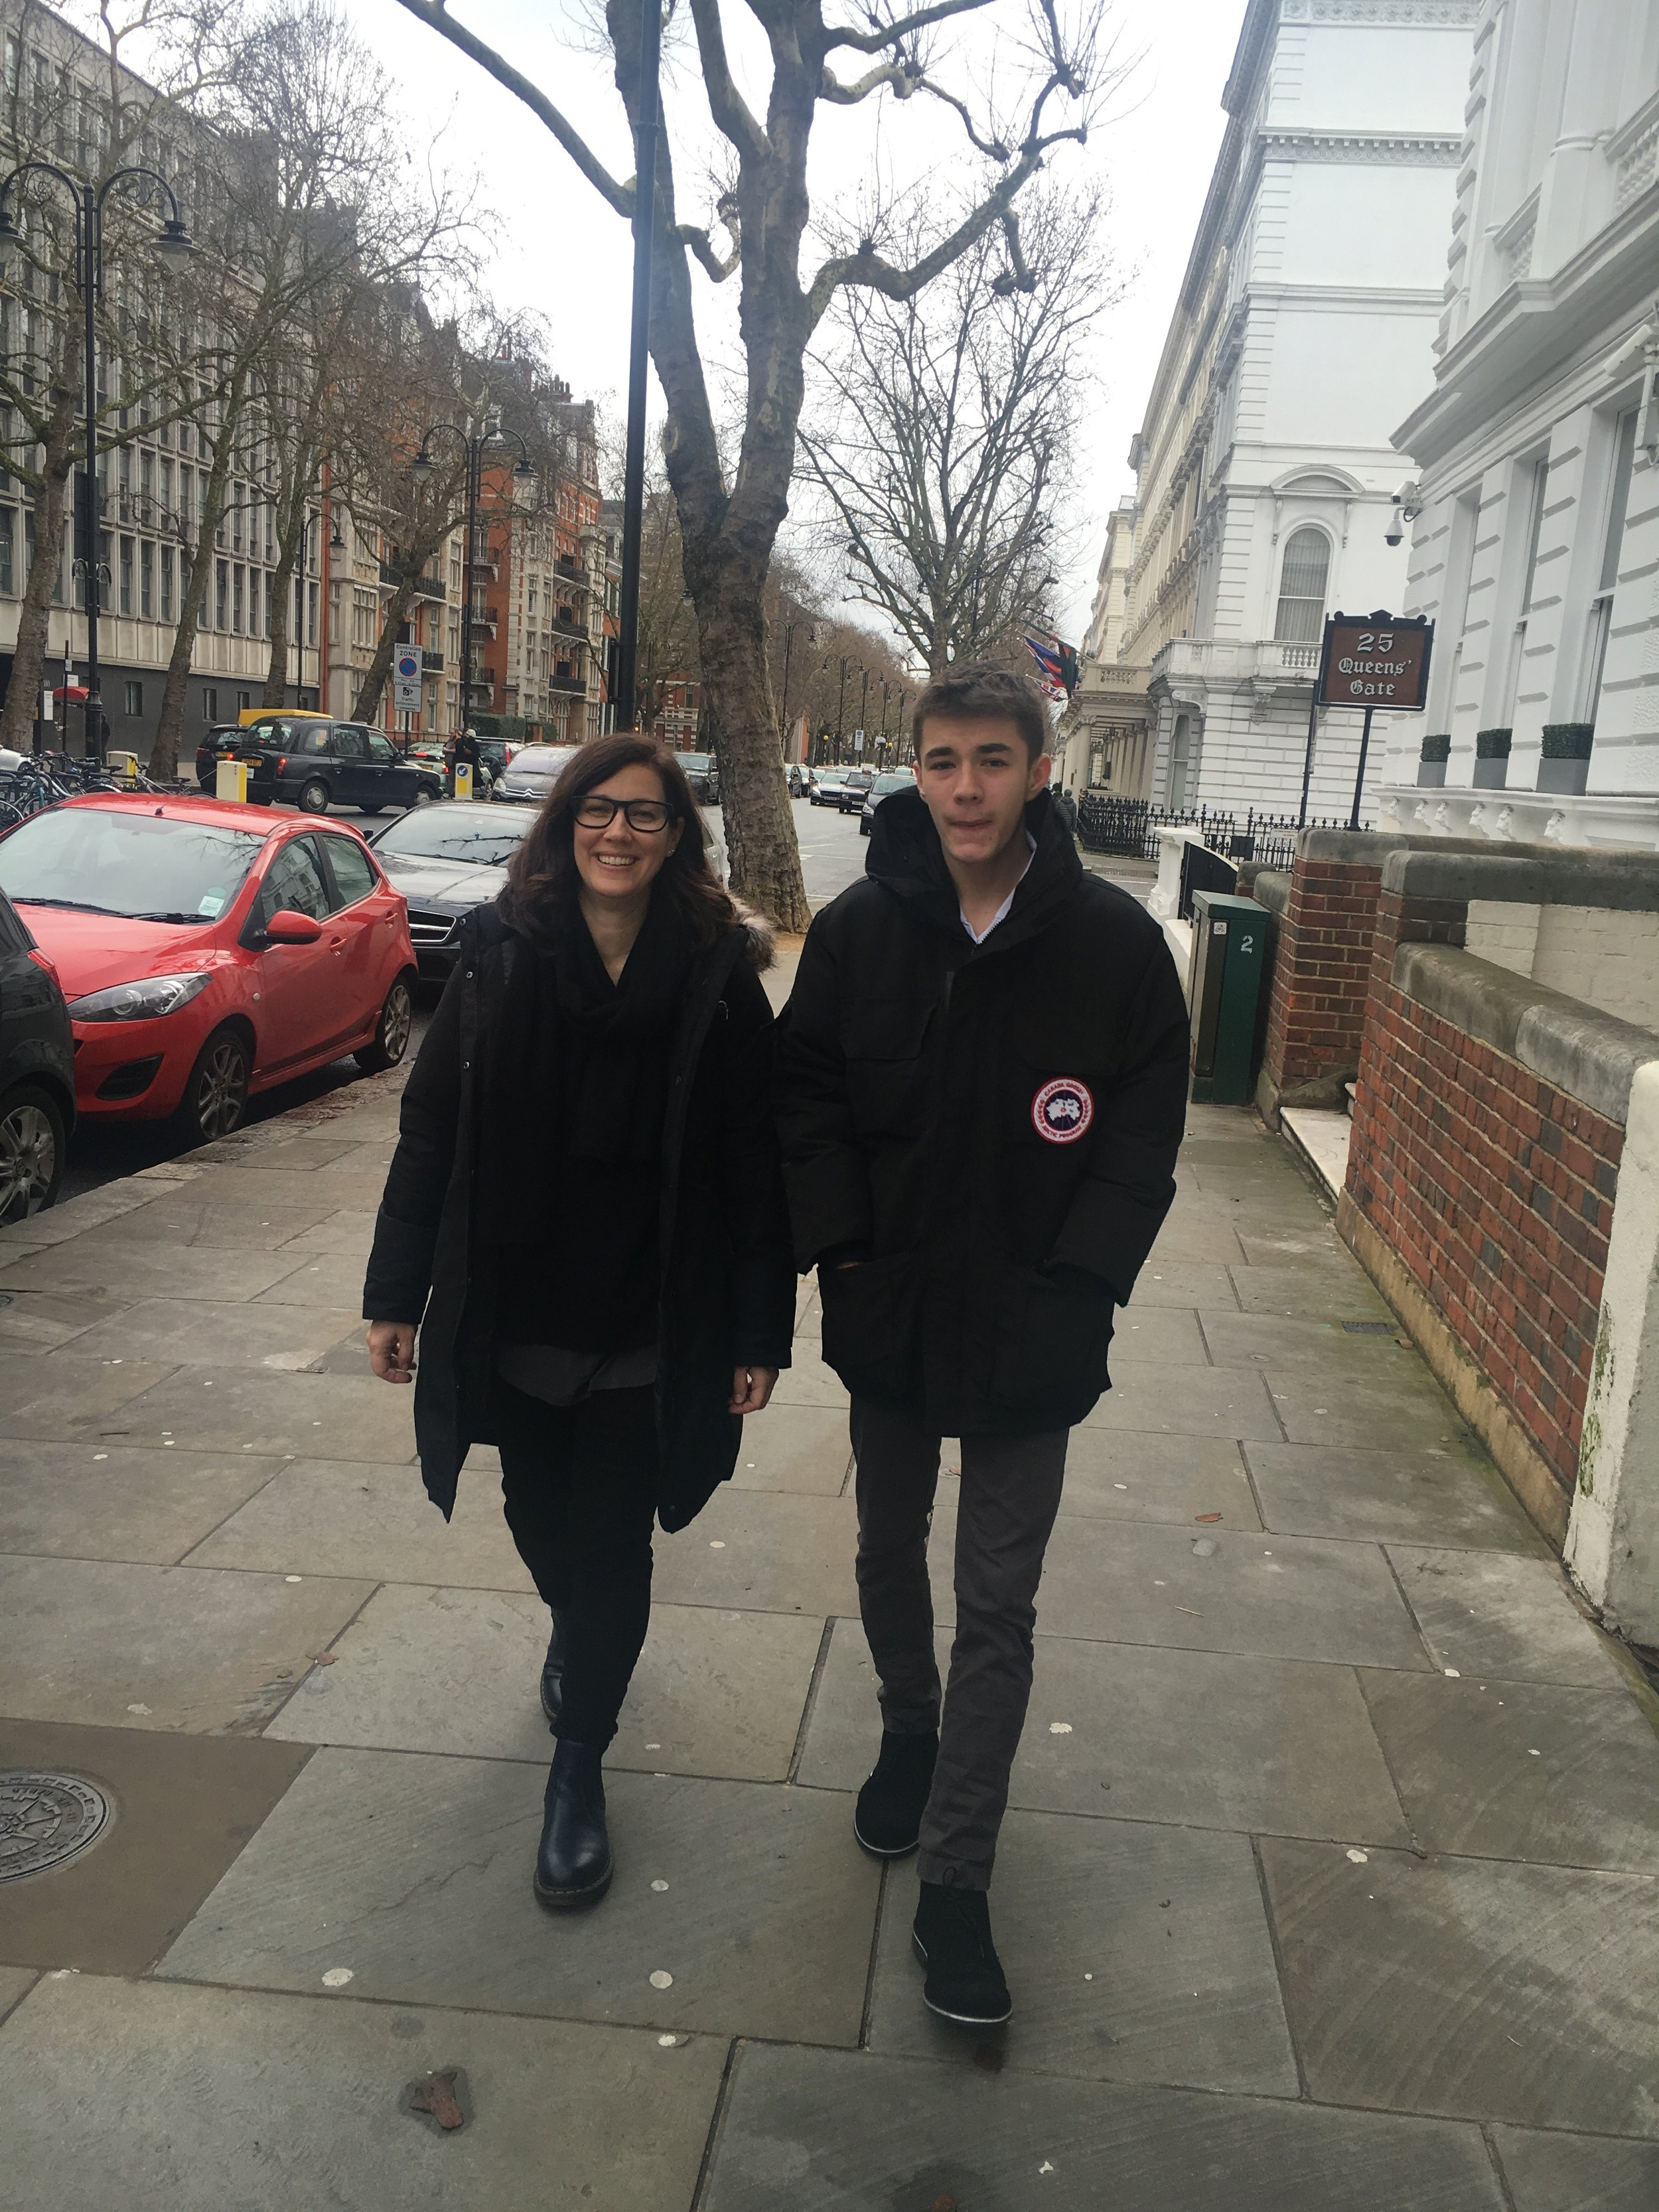 Carisima and her son in London.